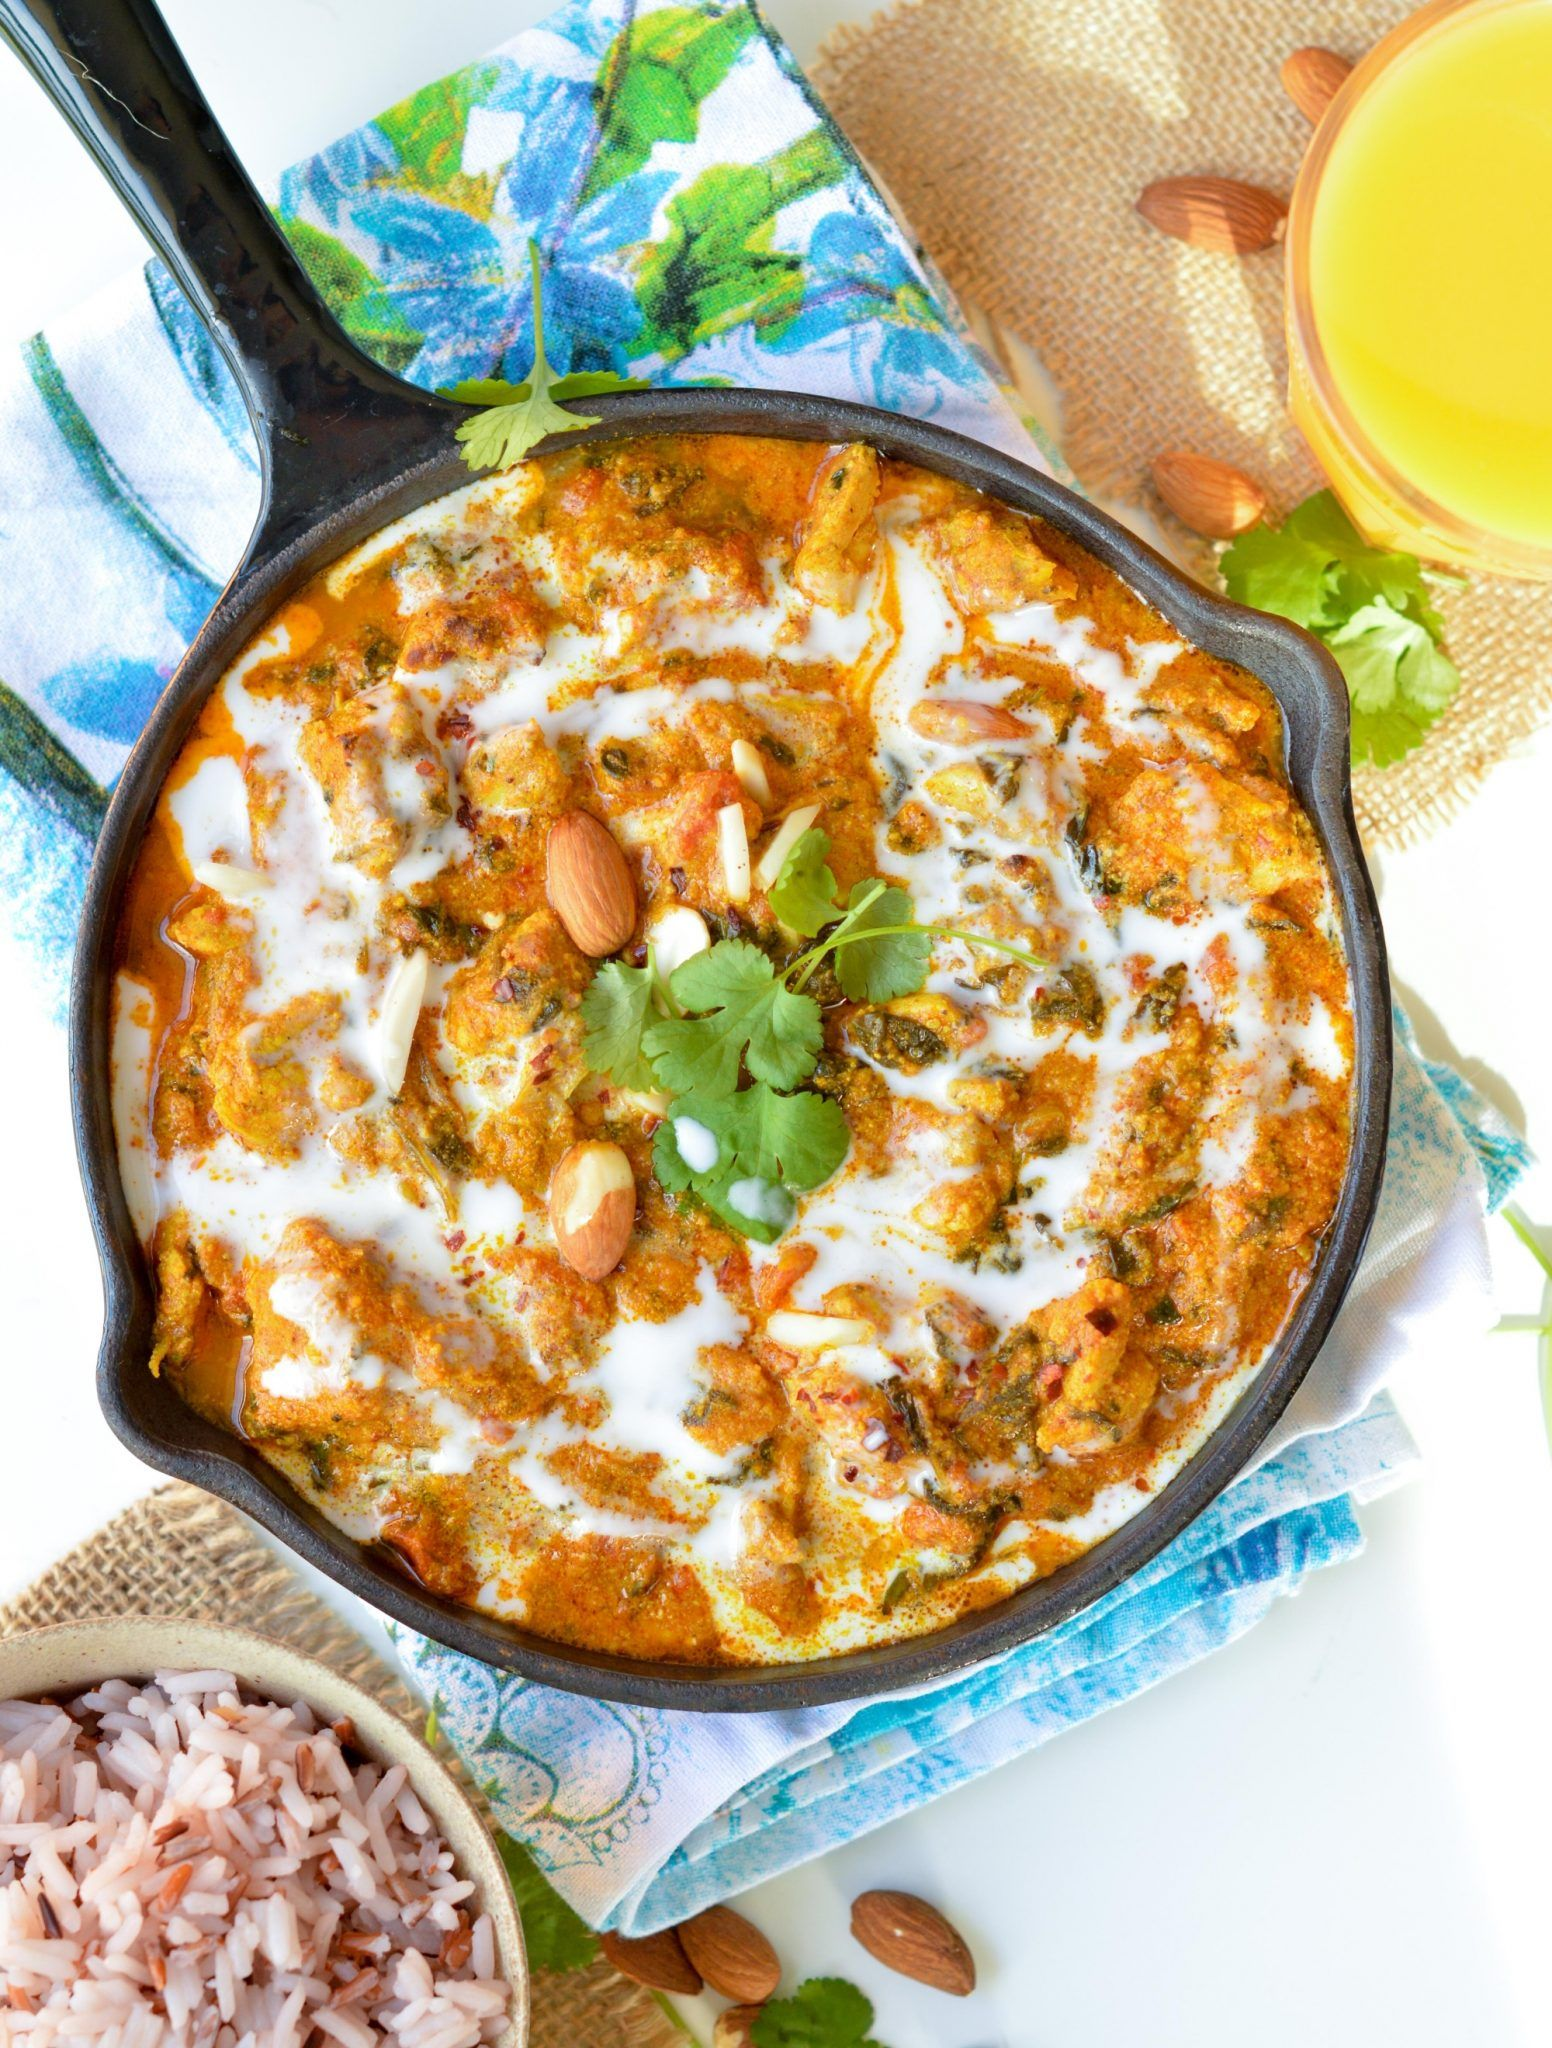 Healthy chicken tikka masala a delicious low carb comfort foods healthy chicken tikka masala a delicious low carb comfort foods recipe with delicious indian spices make it vegan swap the chicken by tofu forumfinder Gallery